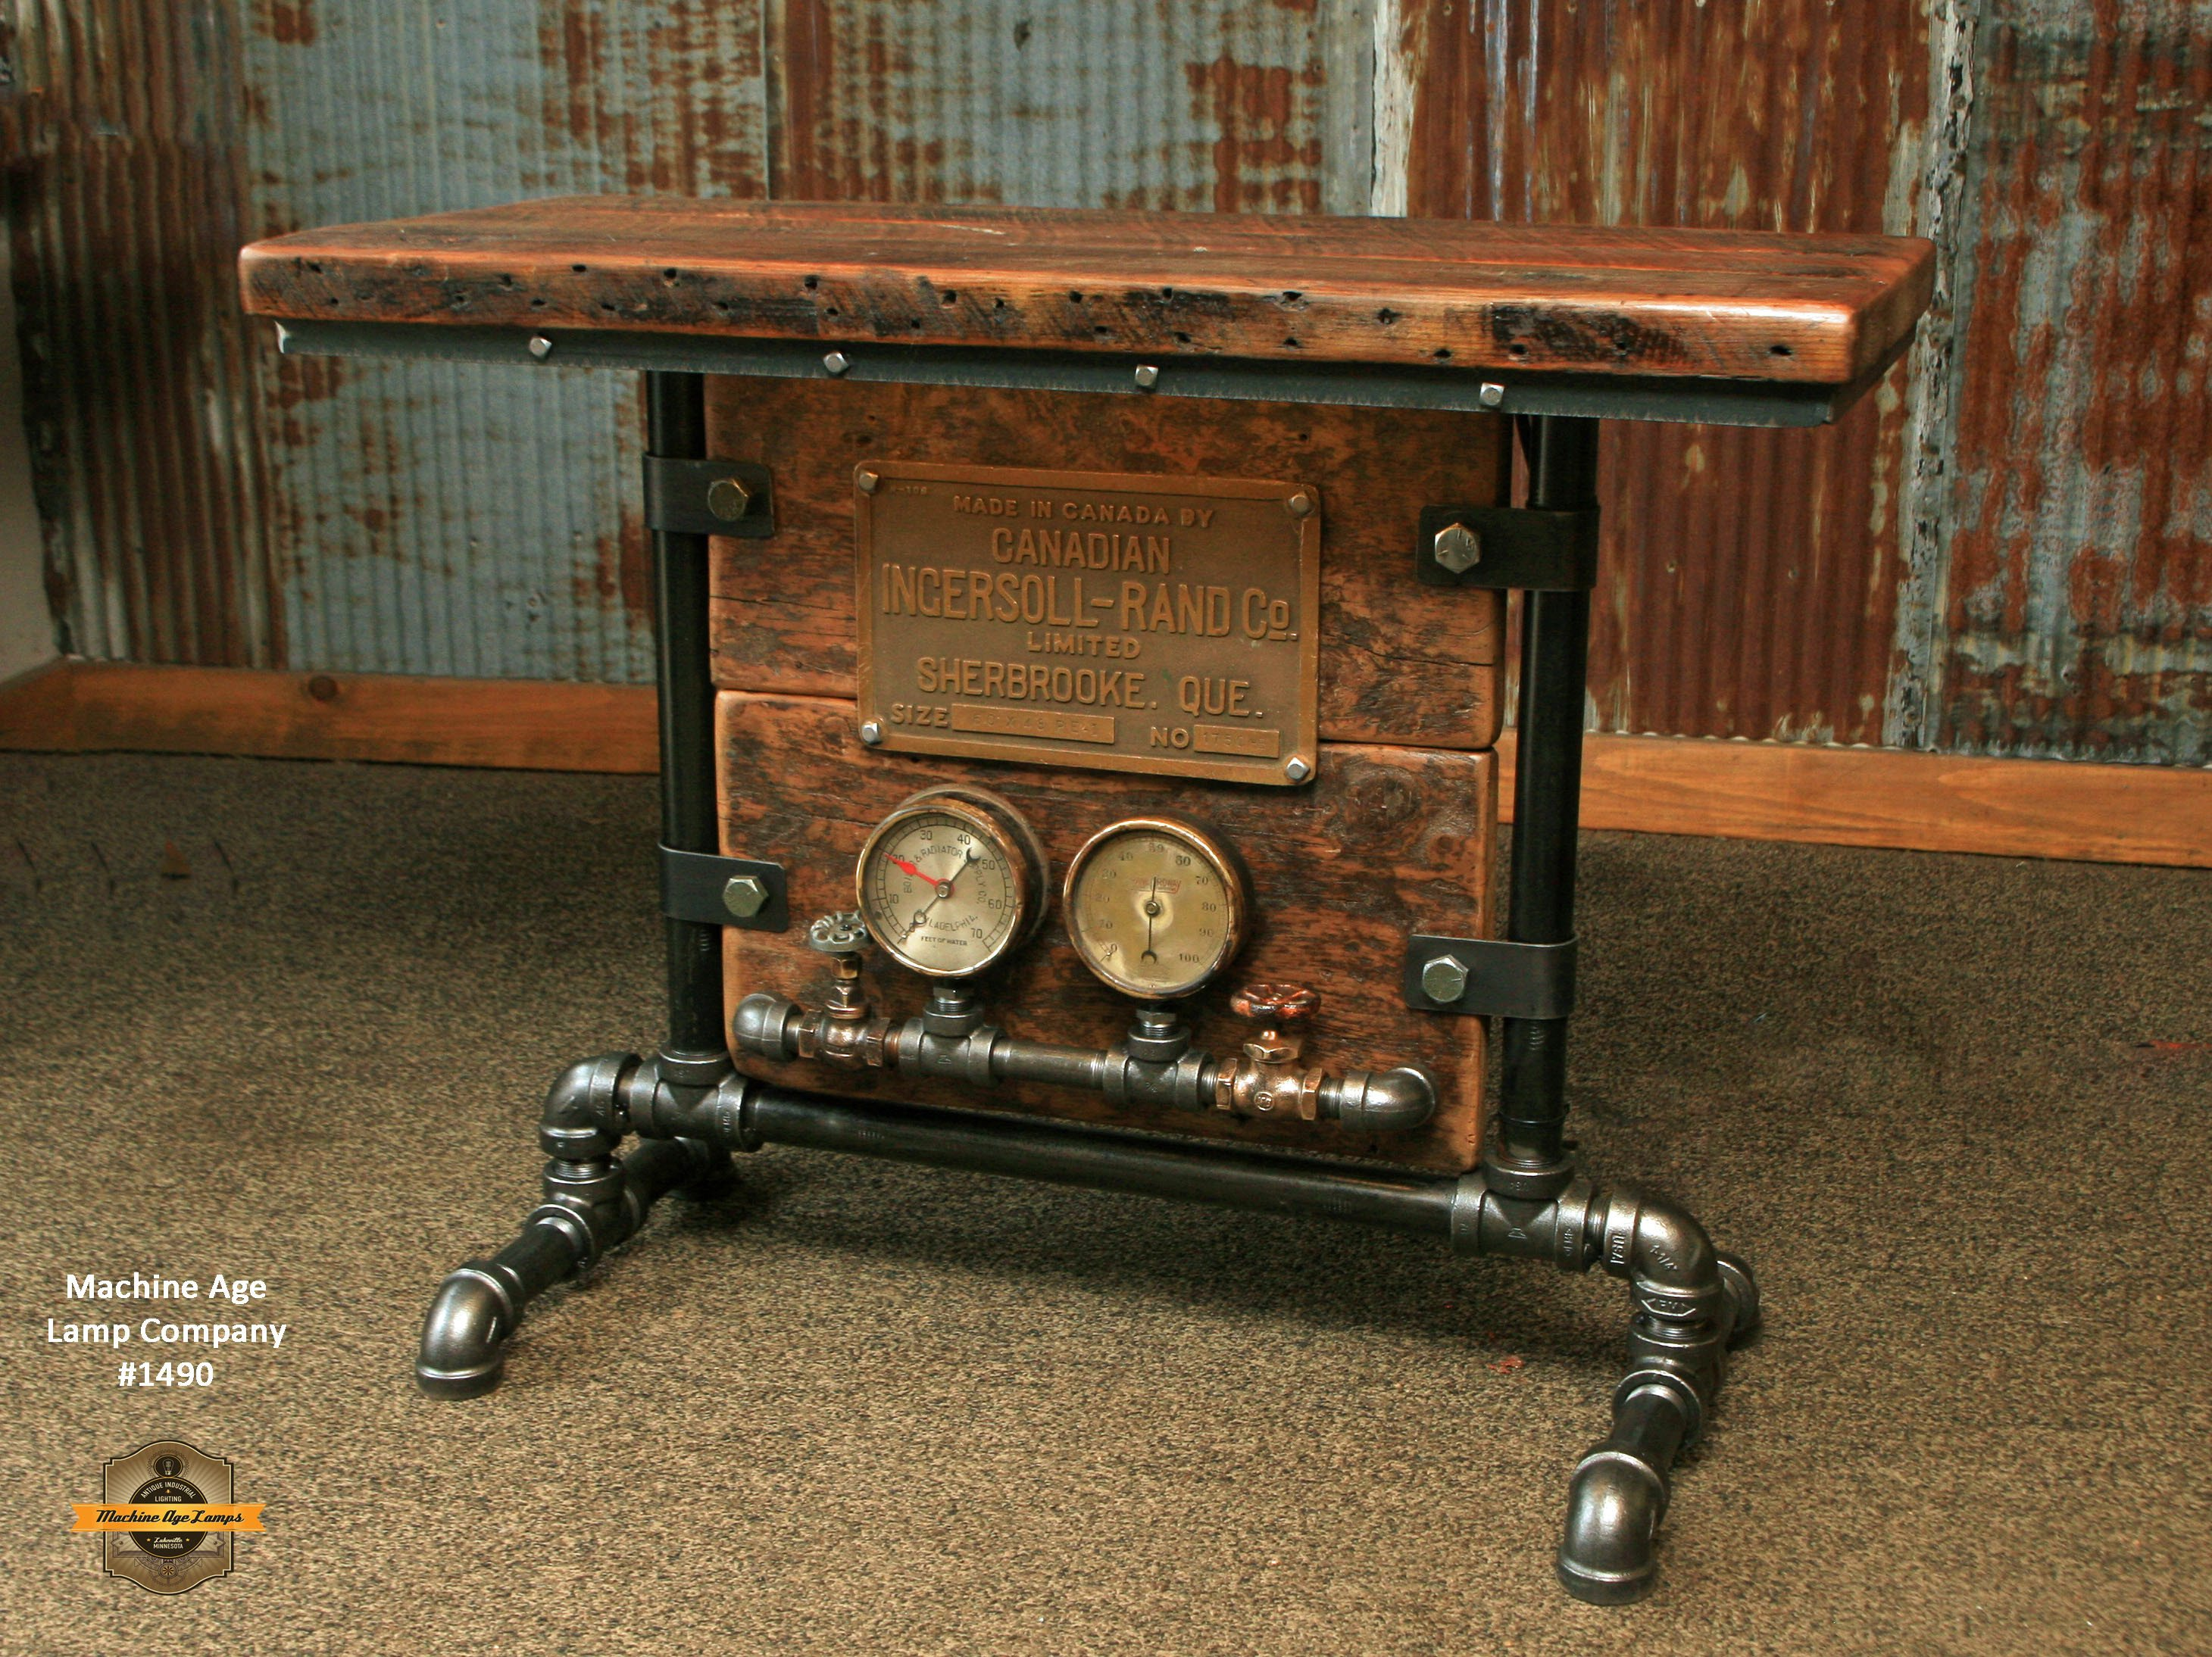 Steampunk Industrial Table Console Ingersoll Rand Mining Table 1490 Muebles Metal Industrial Madera